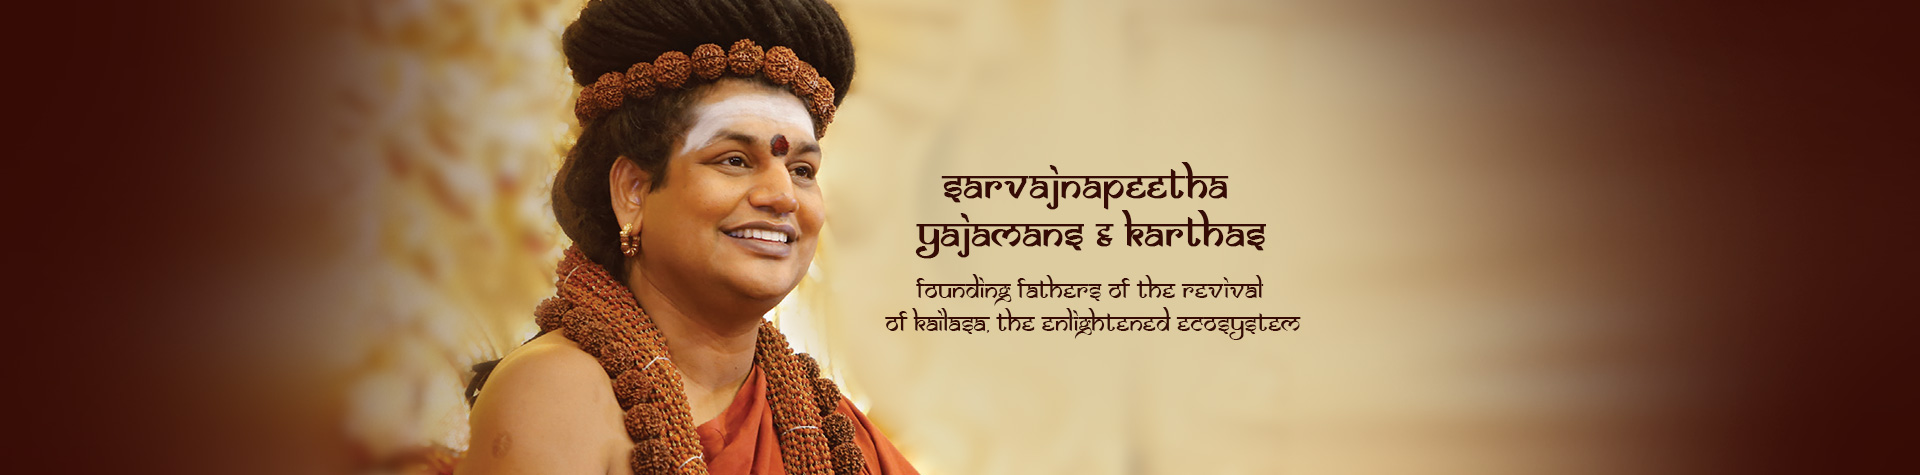 Founding fathers of the revival of Kailasa, the enlightened ecosystem